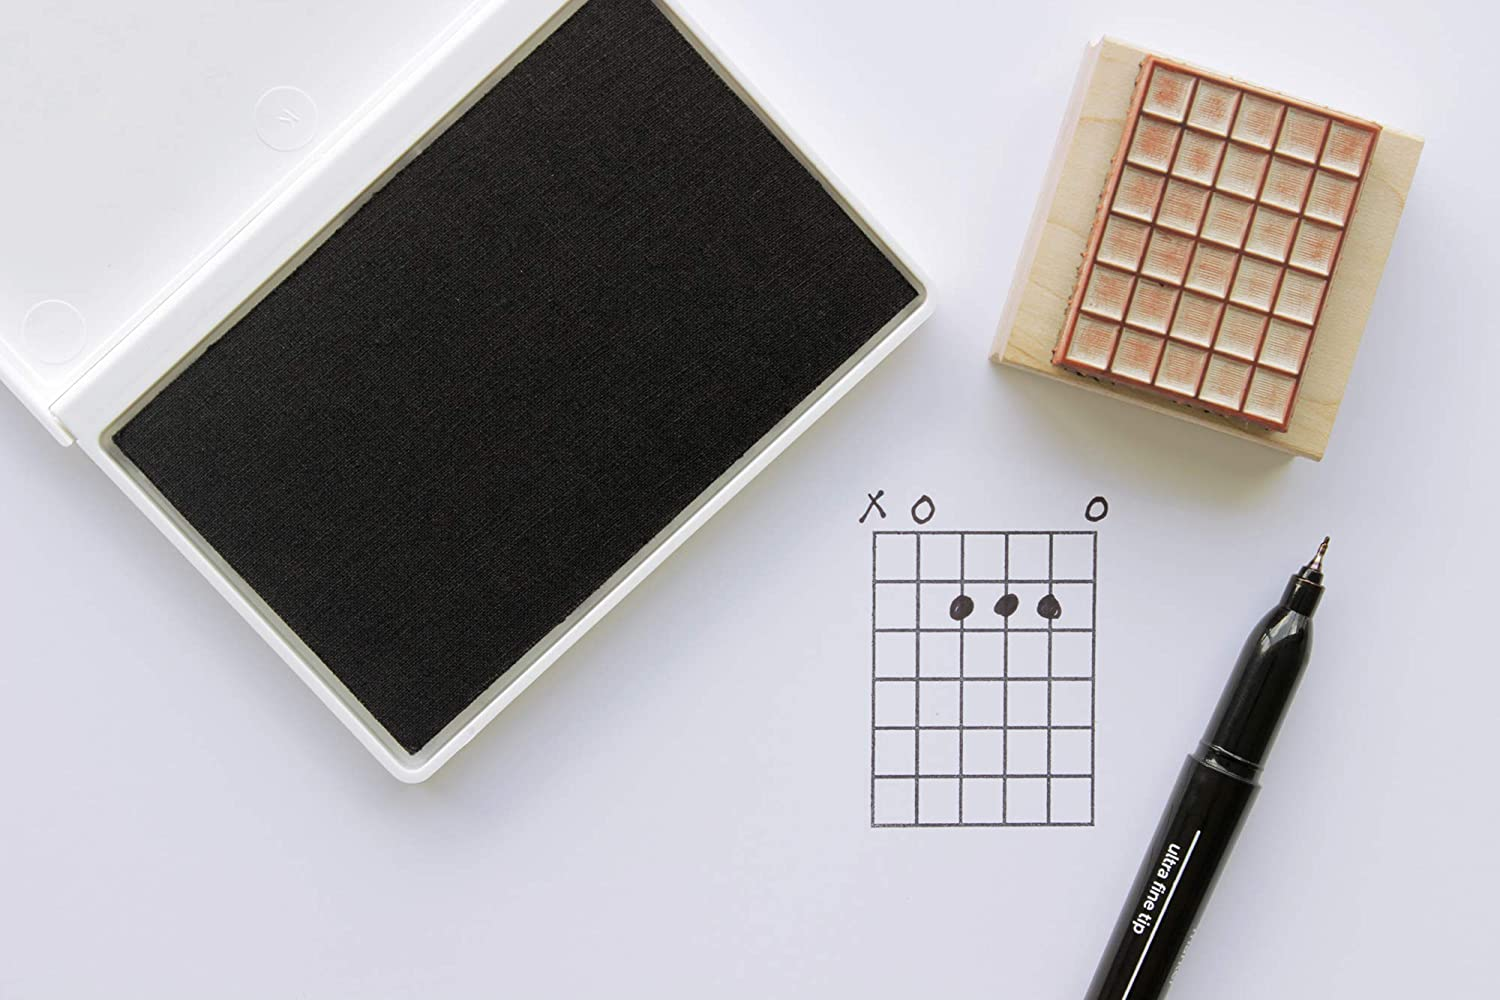 5 Frets Guitar Chord Chart ExcelMark Wooden Rubber Stamp